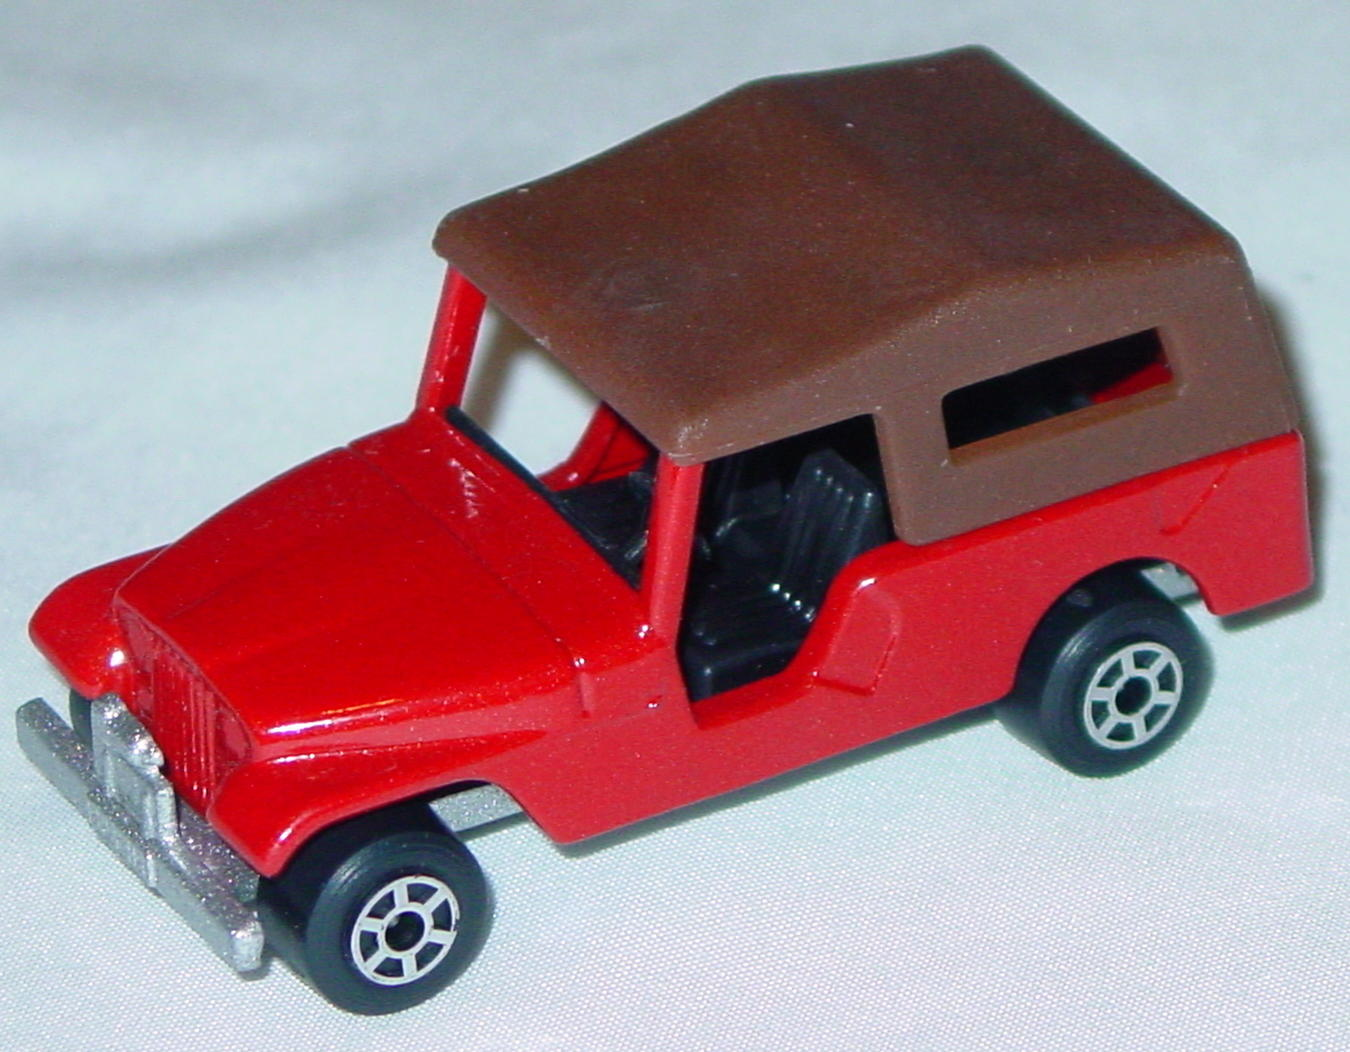 Hungarian 53 C 6 - CJ6 Jeep Red black darker brown roof met sil-grey 5-spoke